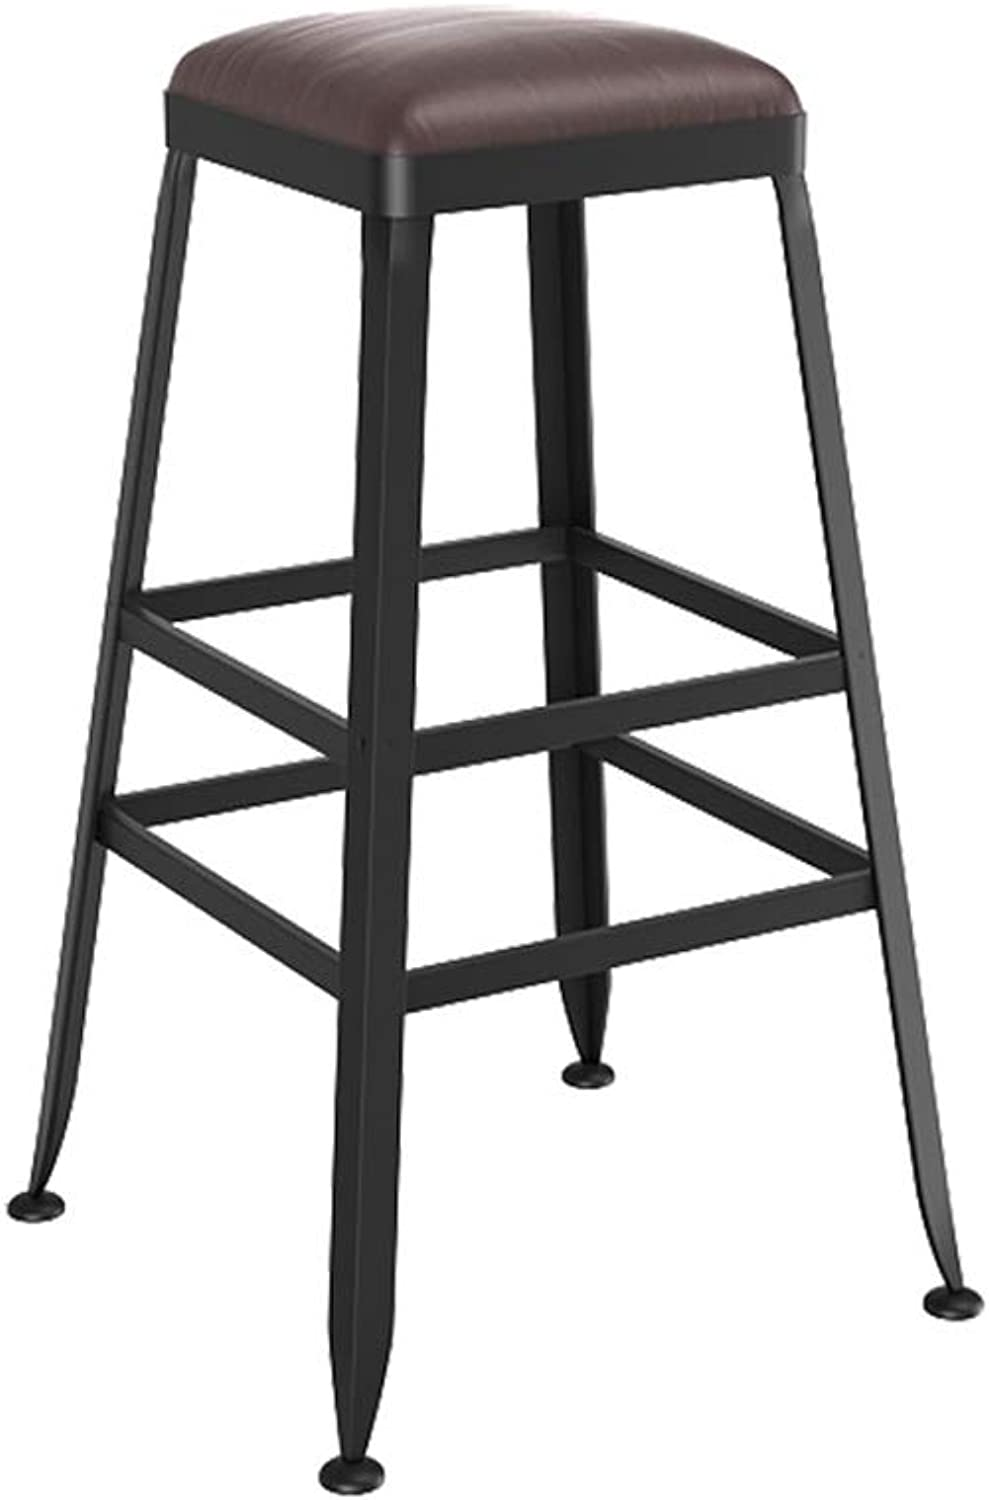 FFLSDR Vintage Style Wrought Iron Bar Stool Bar Stool Can Be Used for Kitchen Restaurant Counter Bar Chair (Size   65CM)